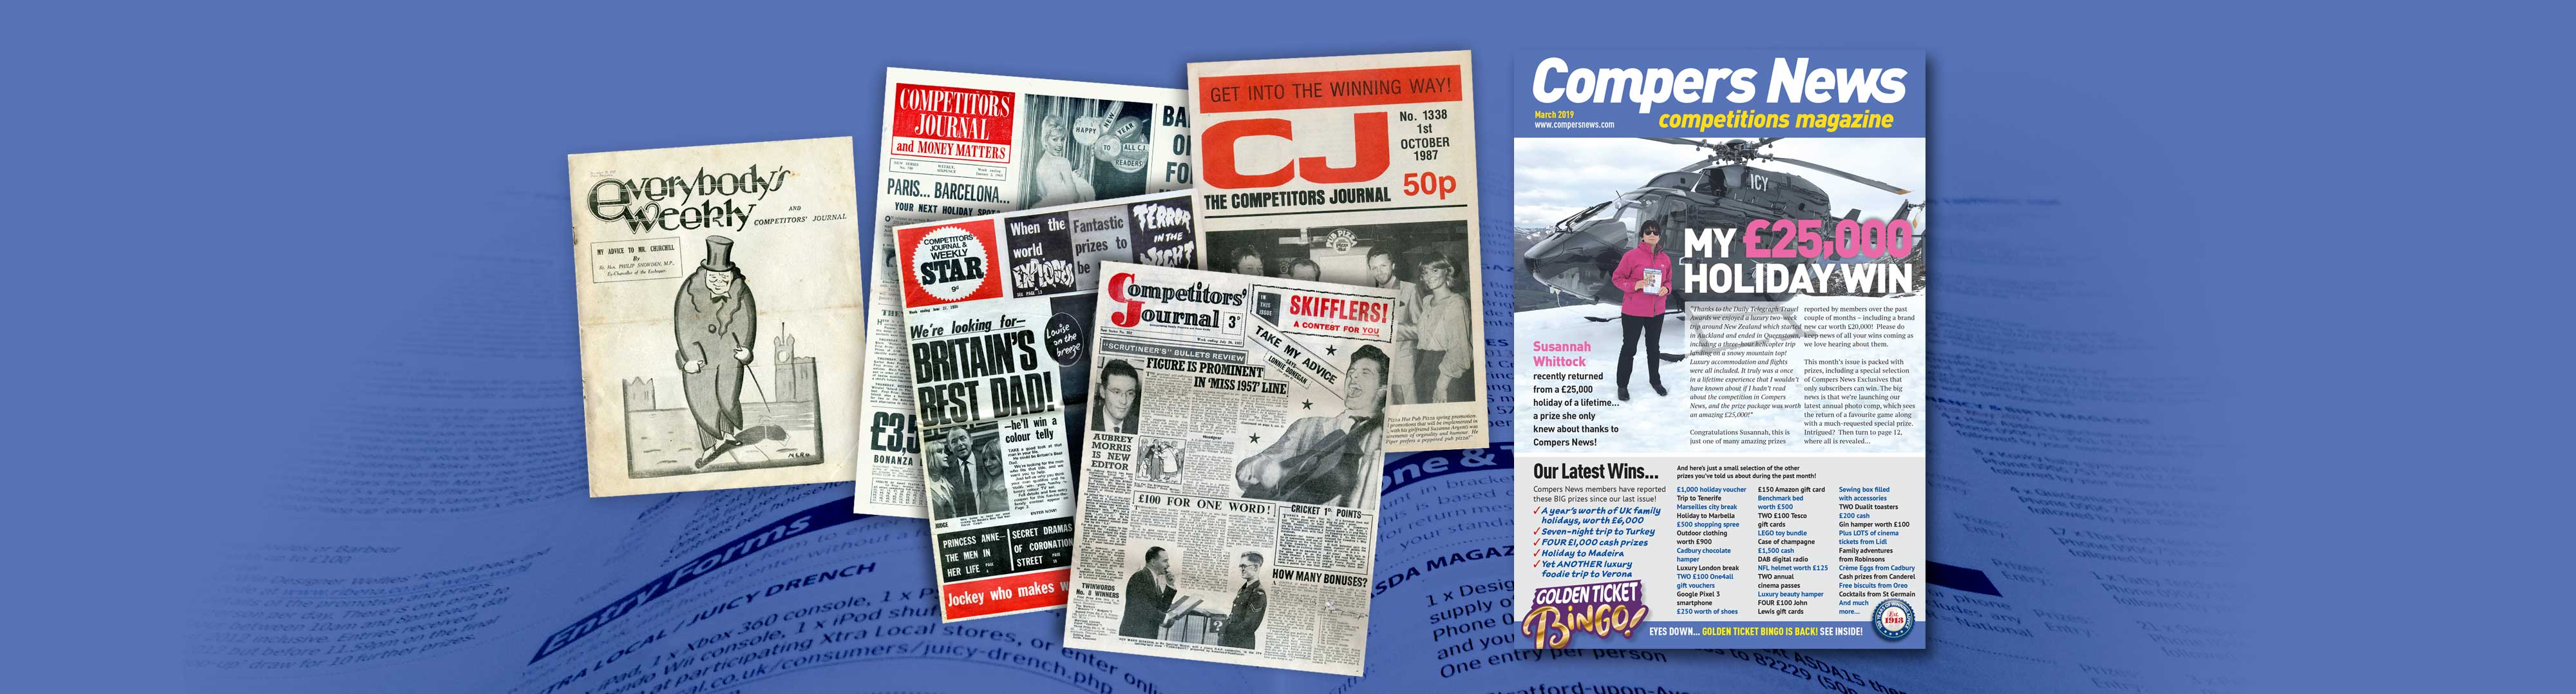 Compers News magazine